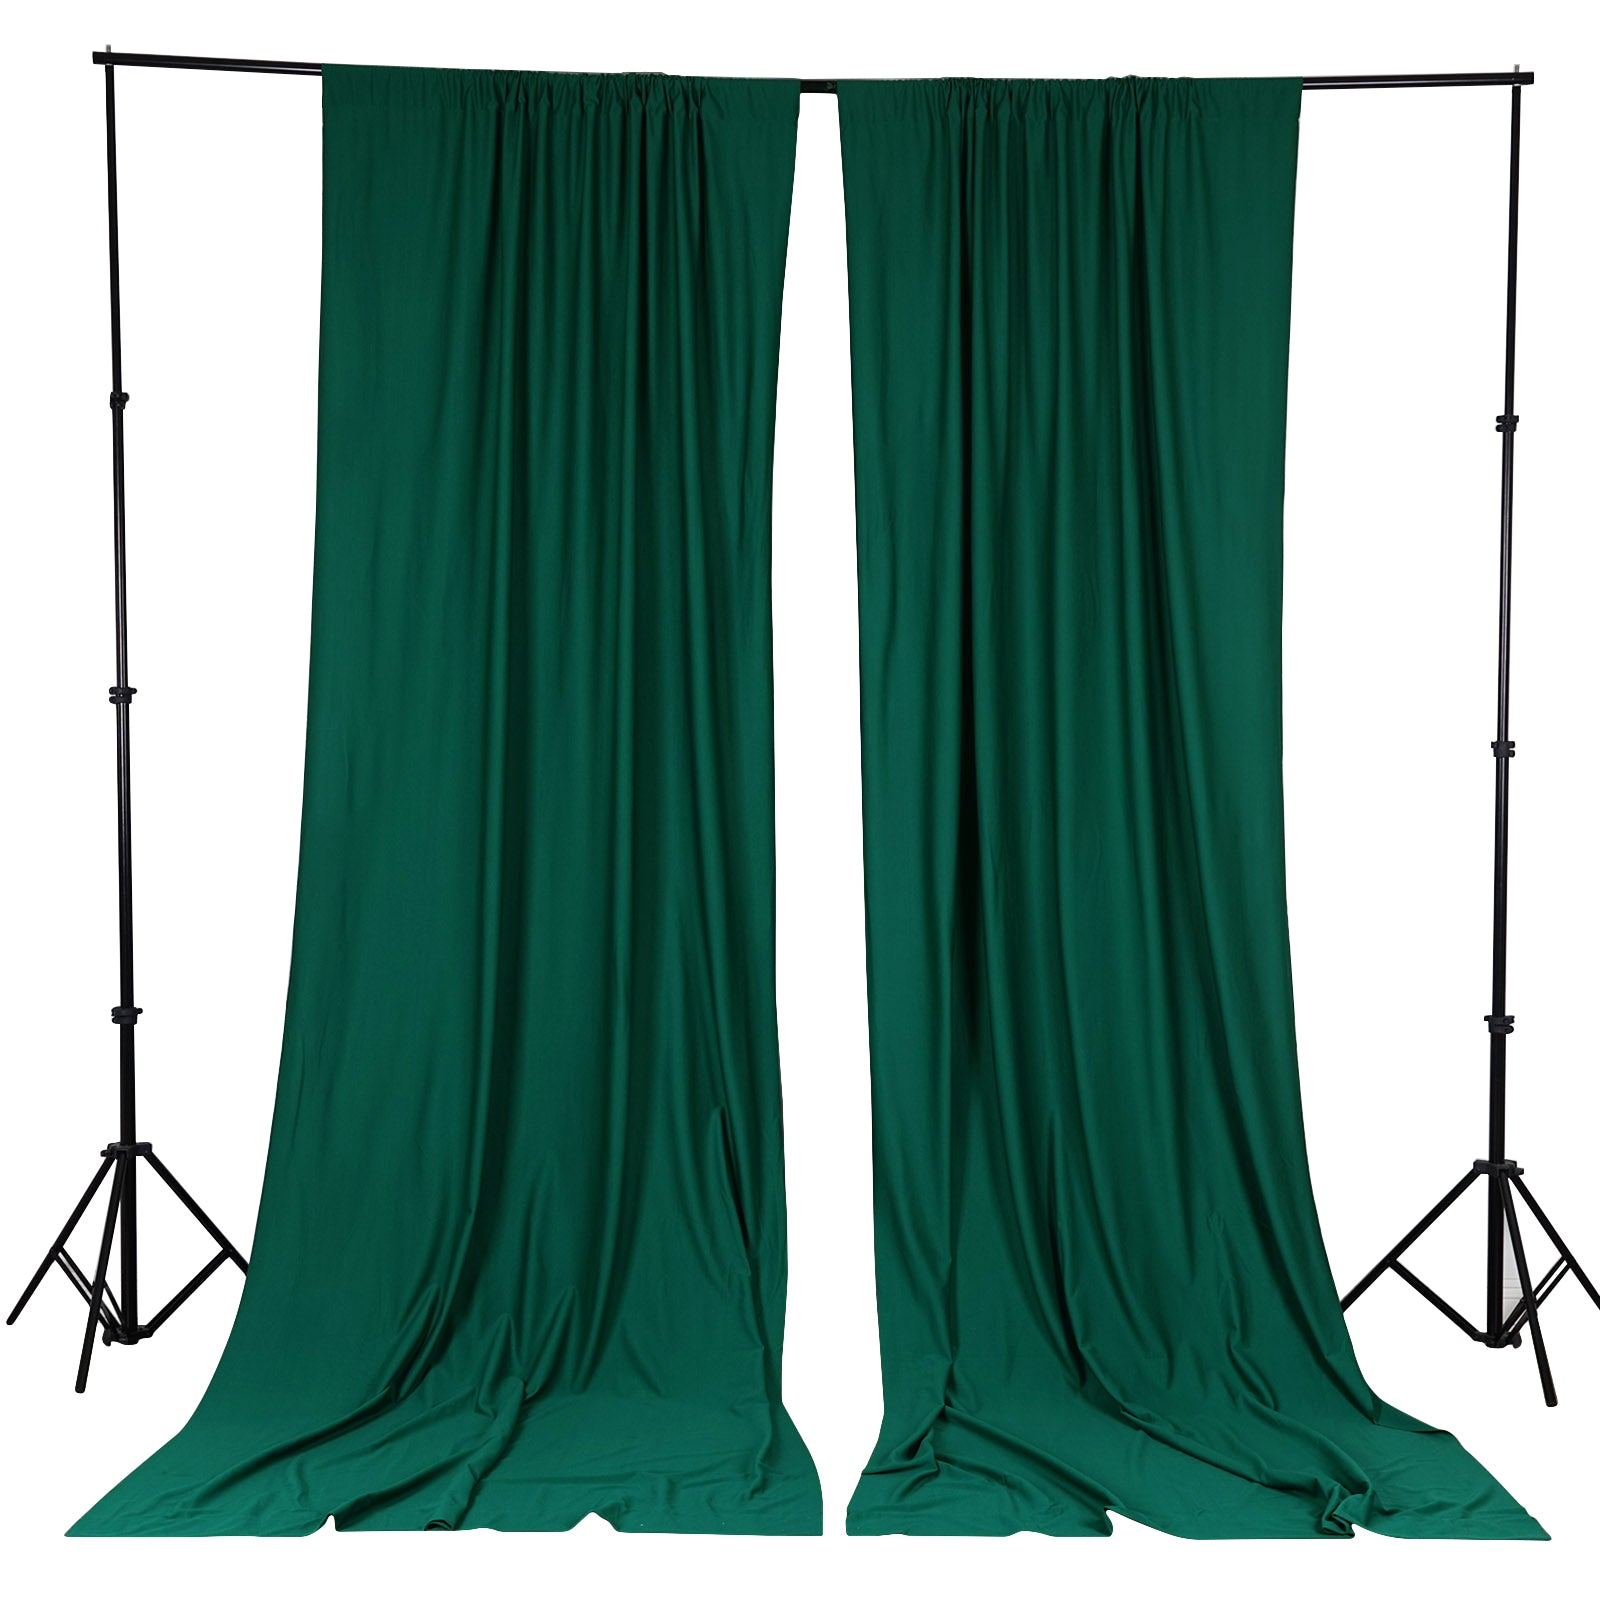 Green stage curtains - 10ft Hunter Green Polyester Fire Retardant Curtain Stage Backdrop Partition Premium Collection